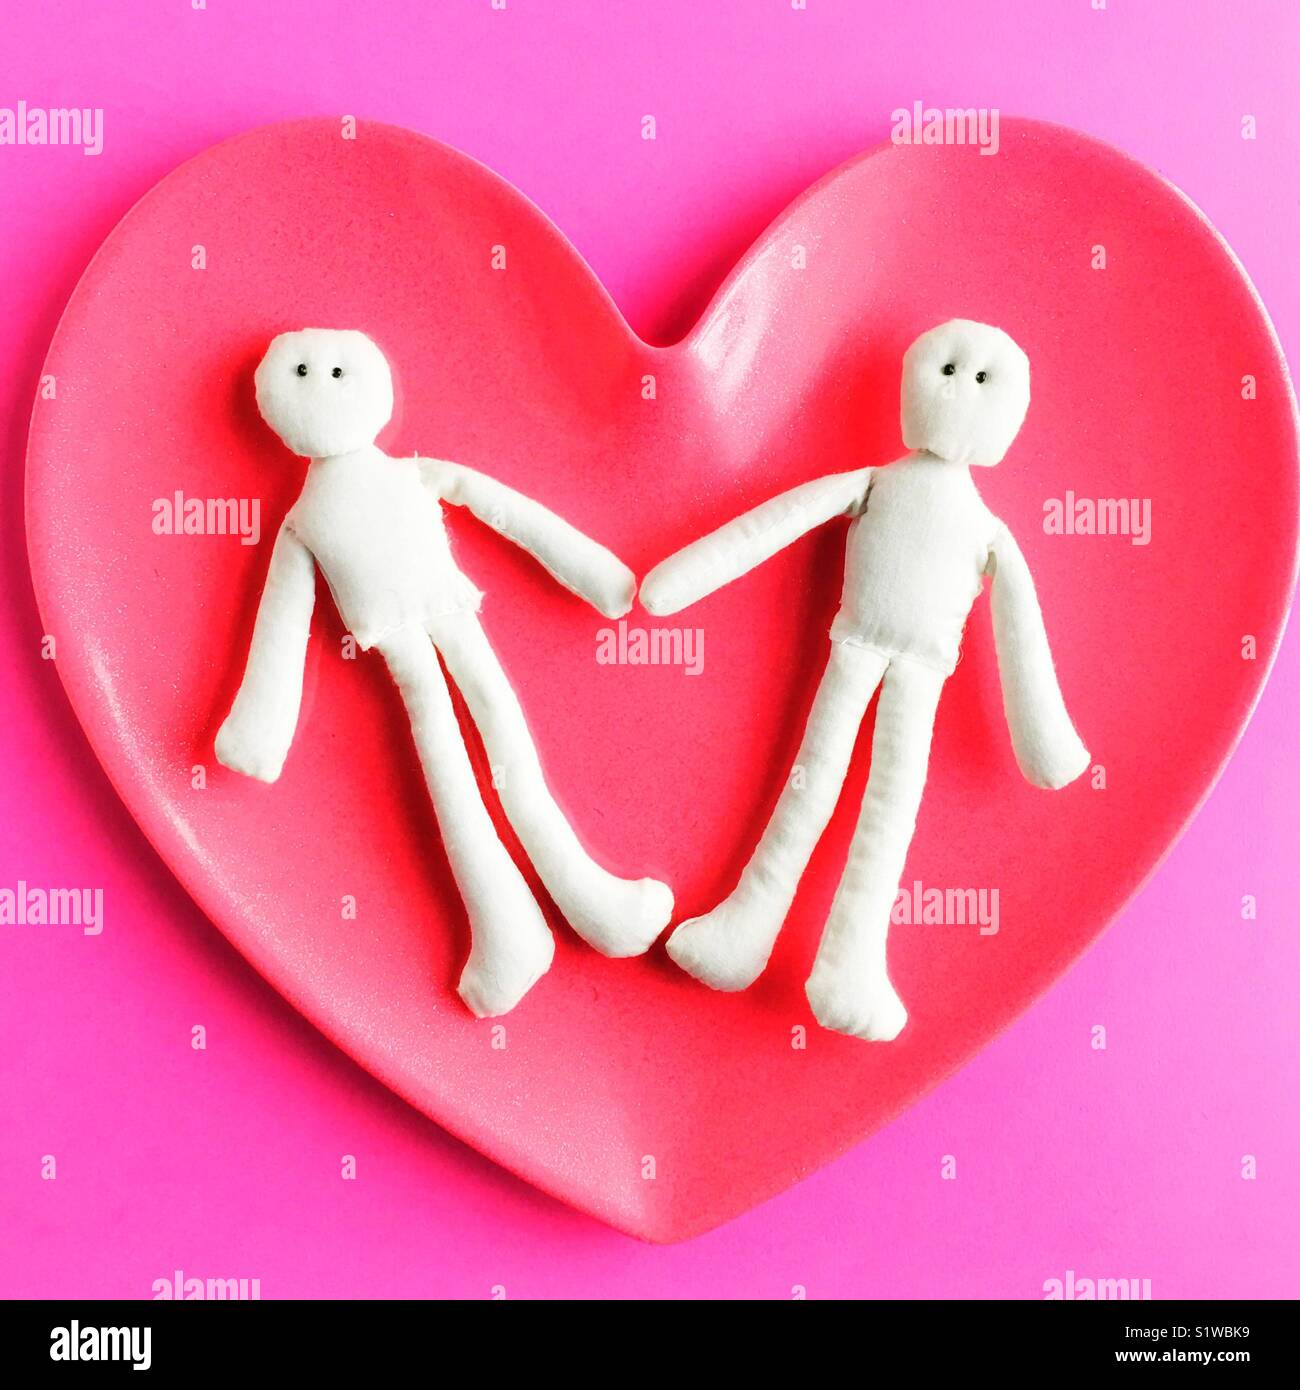 Conceptual love relationship. - Stock Image